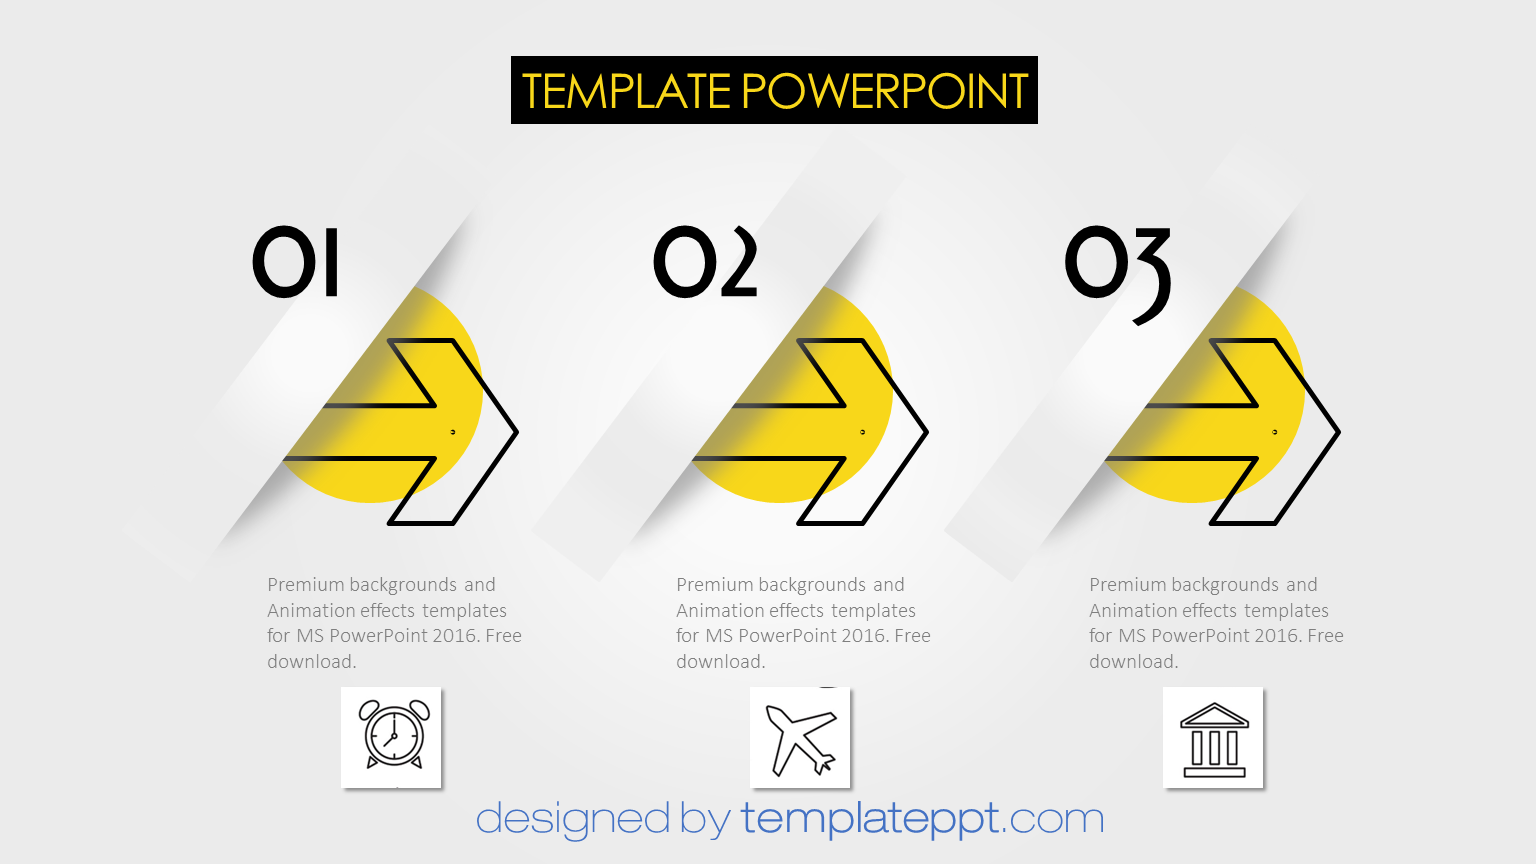 Animated png for ppt free download transparent animated for ppt powerpoint templates free download 2016 animated png for ppt free download toneelgroepblik